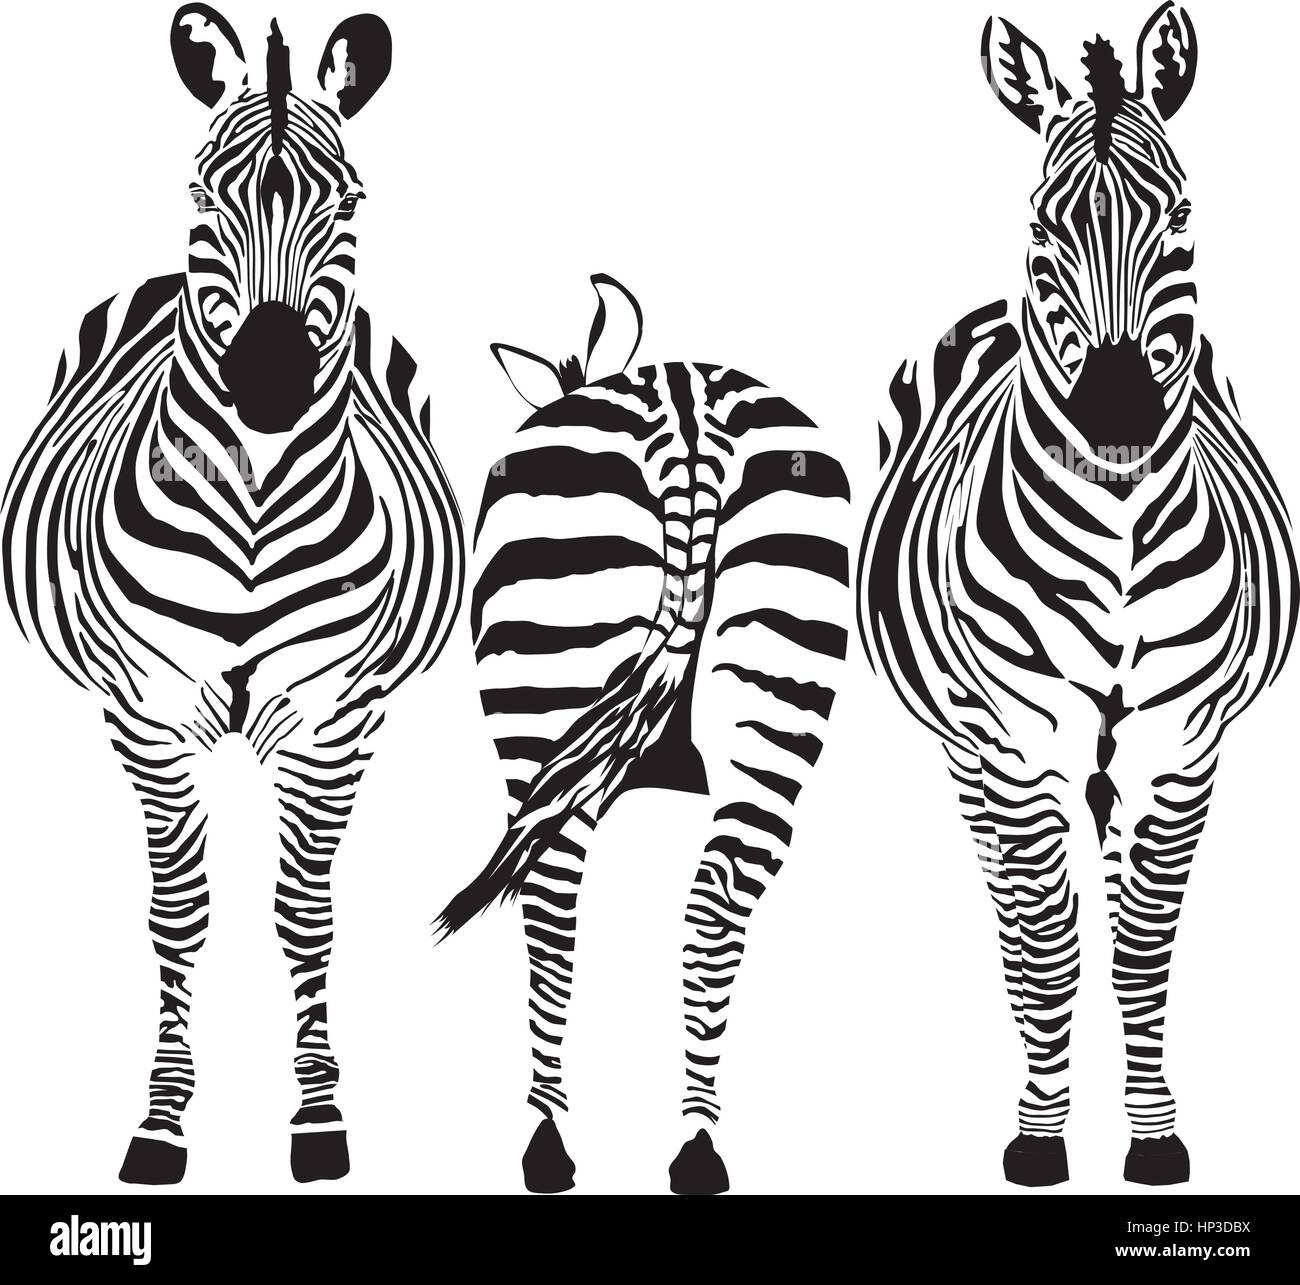 illustration of three zebras, two front, one rear - Stock Vector